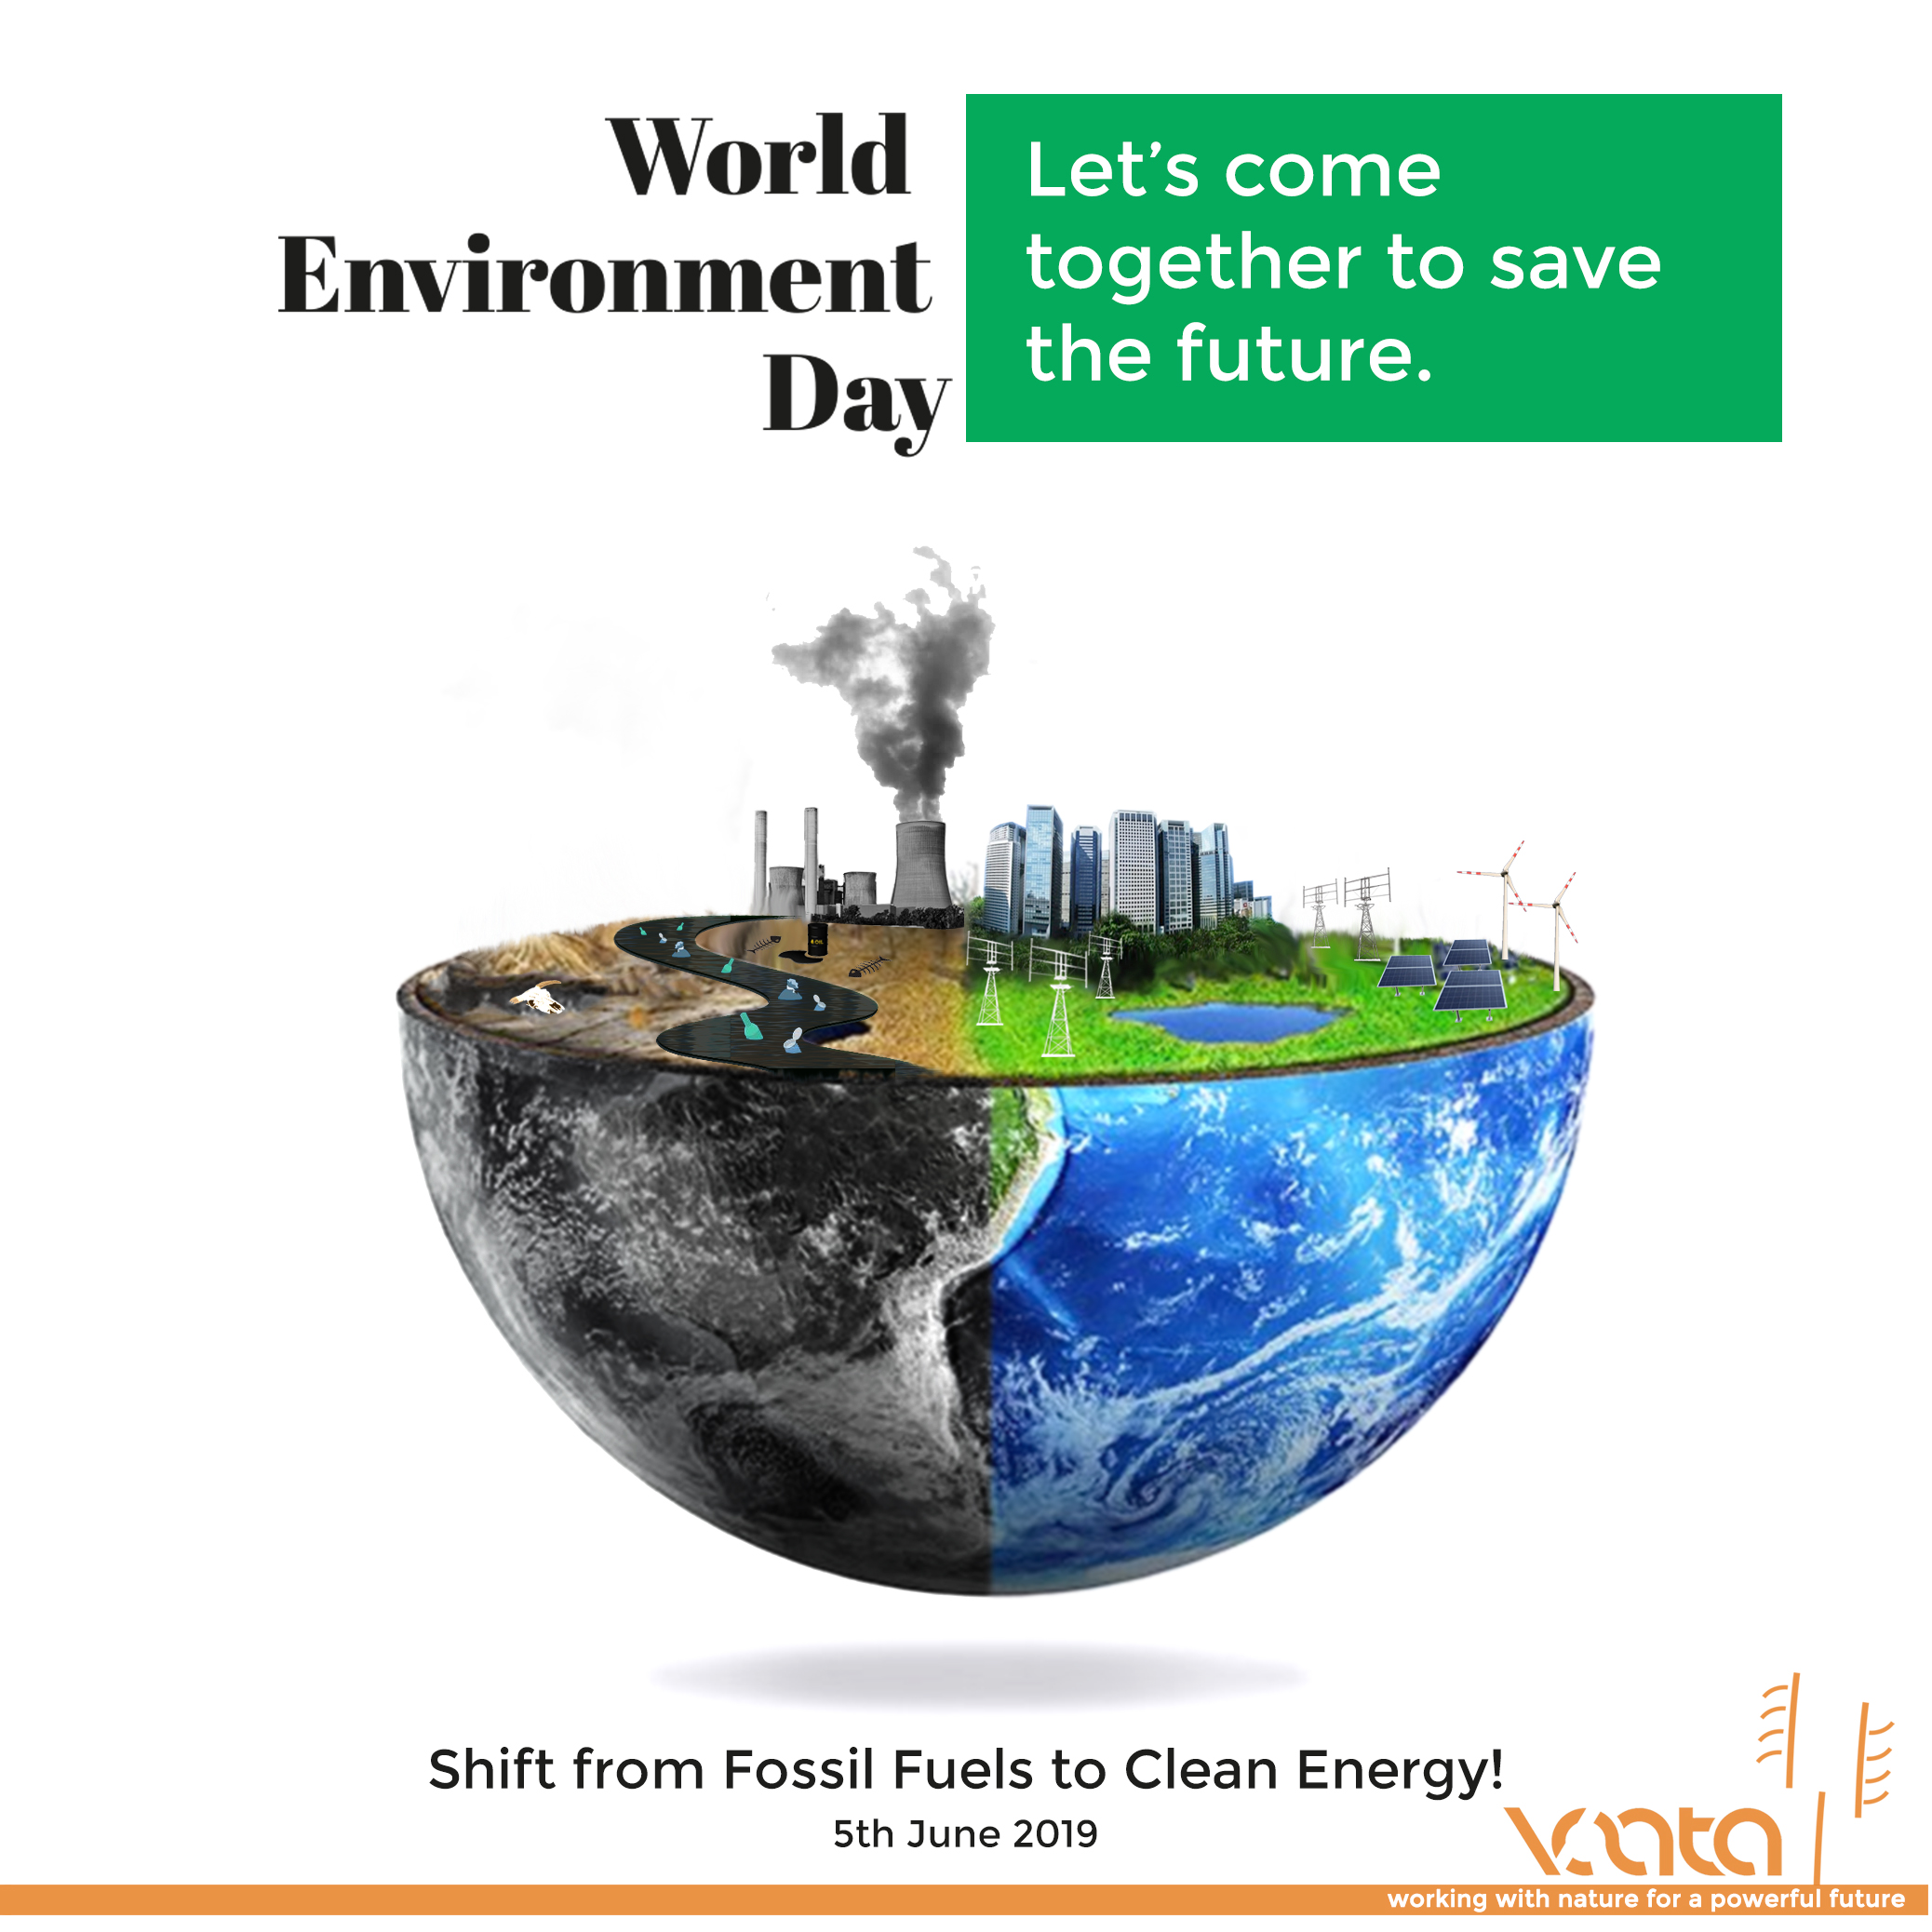 world environment day-1 copy.jpg